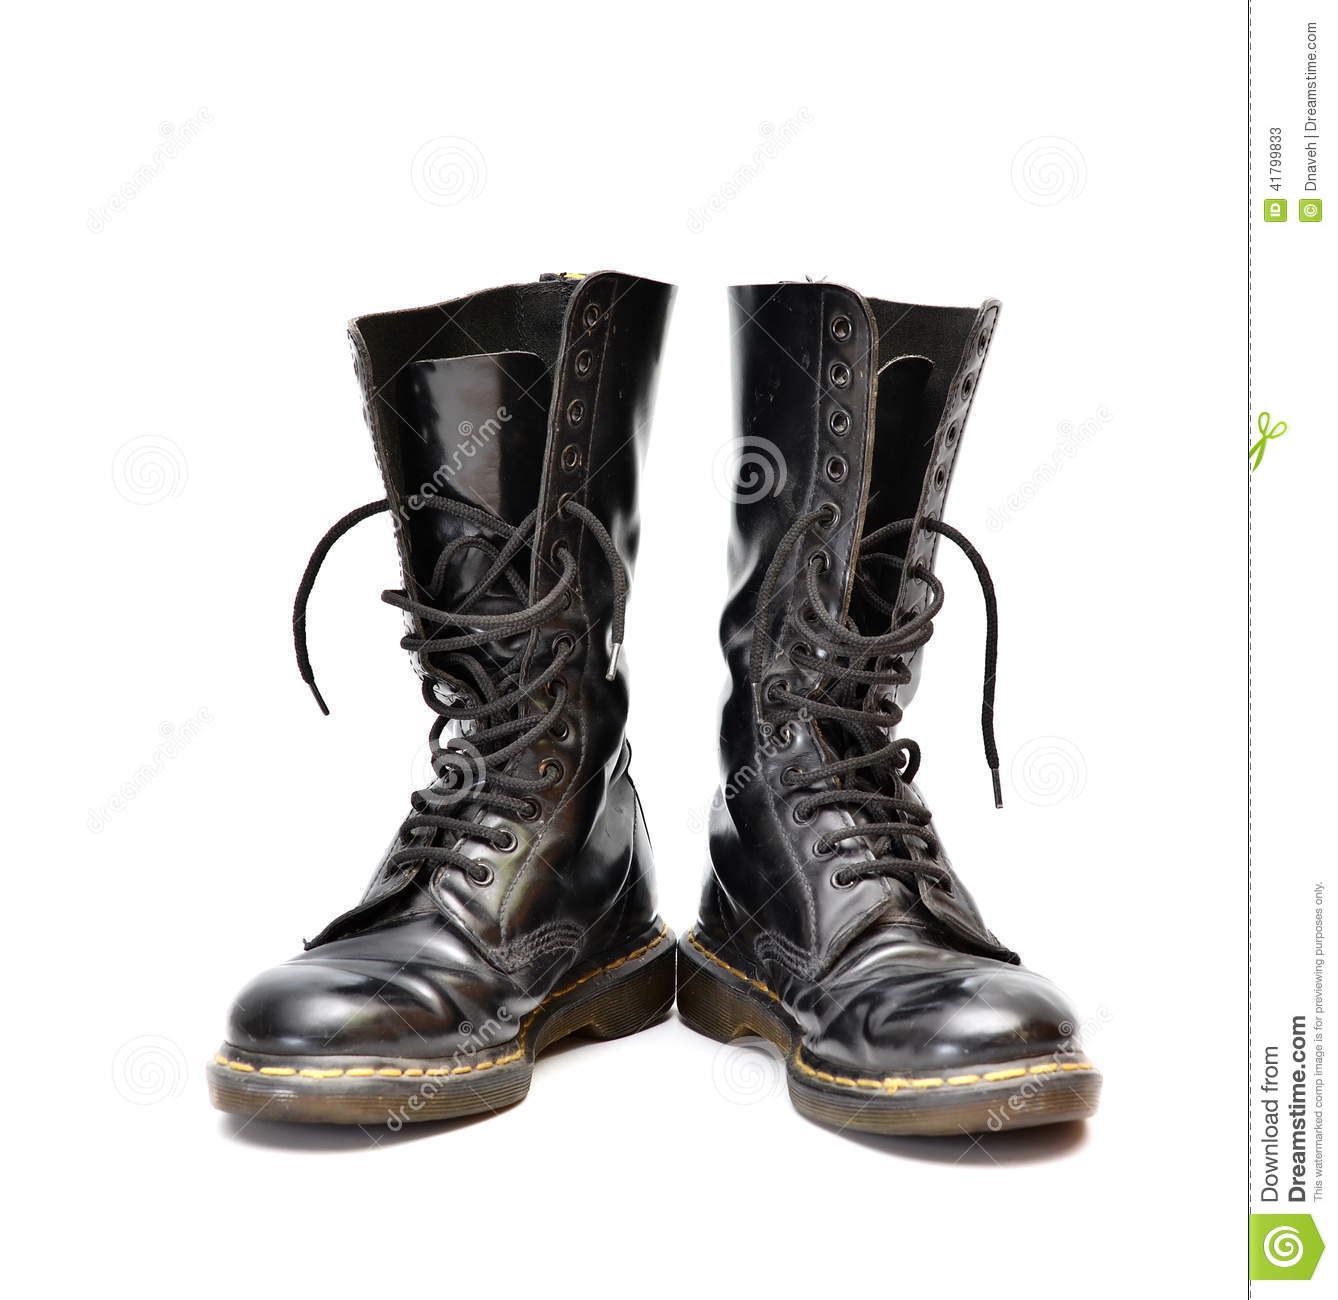 Pair Of Mid calf 14 Eyelet Black Lace up Boots Stock Photo